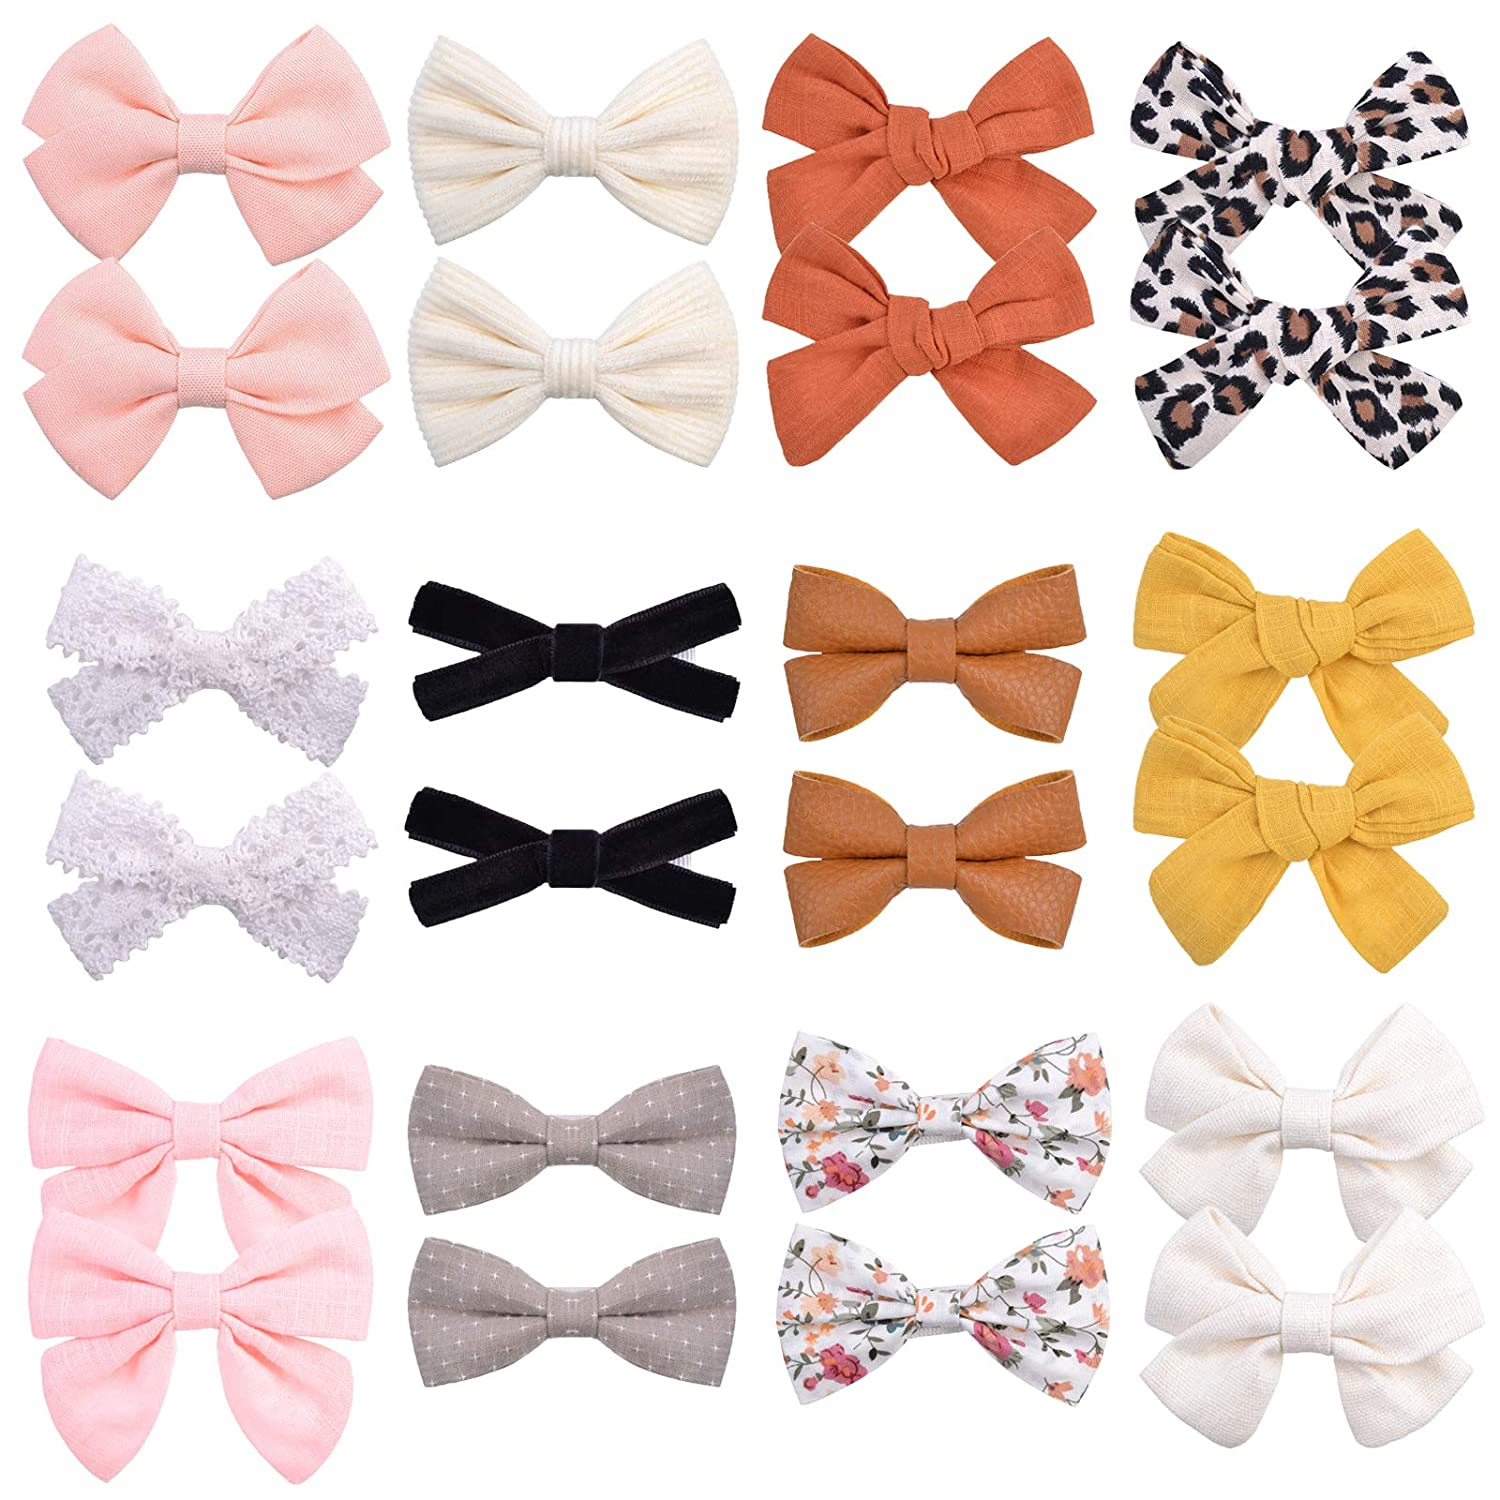 24PCS store Baby Girl Hair Bows Barre Clips Alligator mart Fully Lined